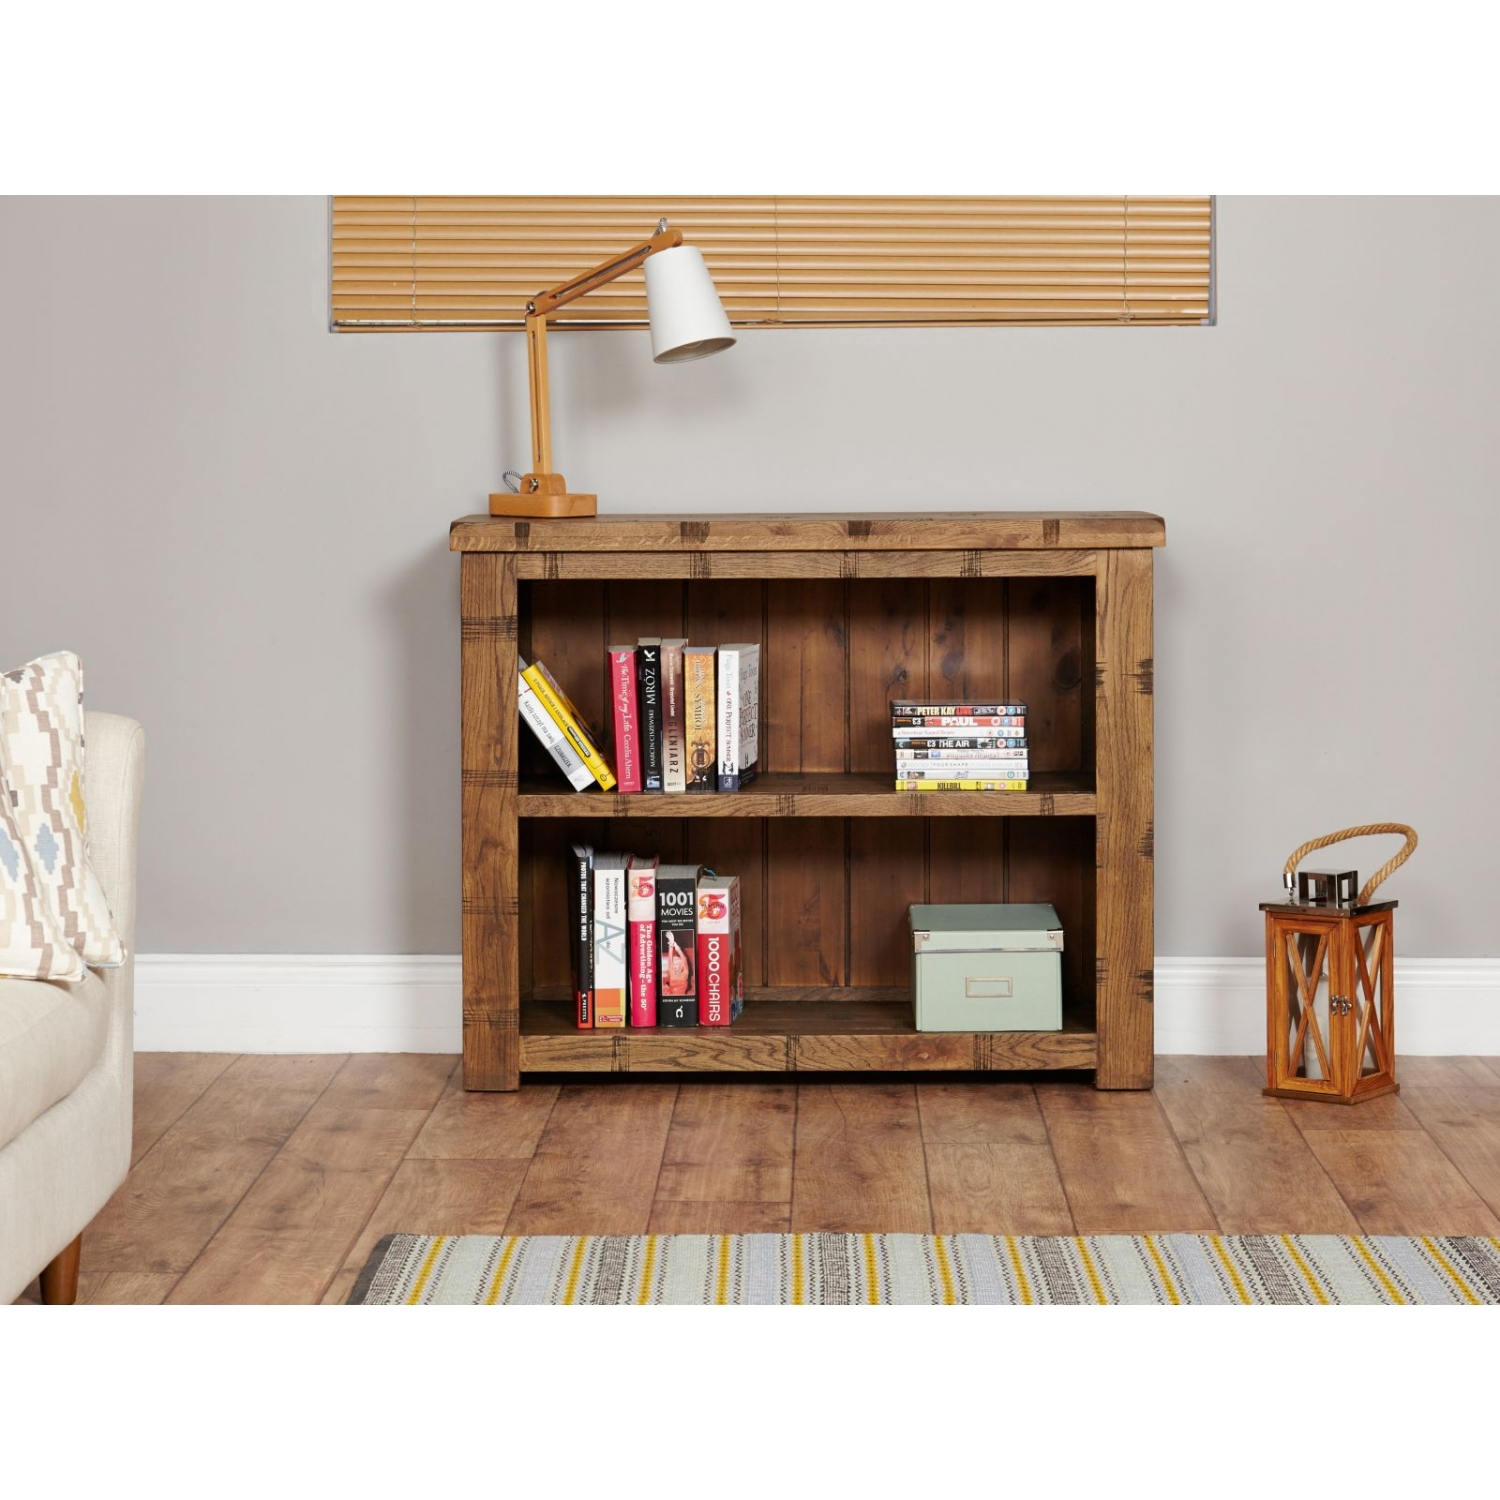 Clements rough sawn solid oak furniture low living room for Low living room furniture